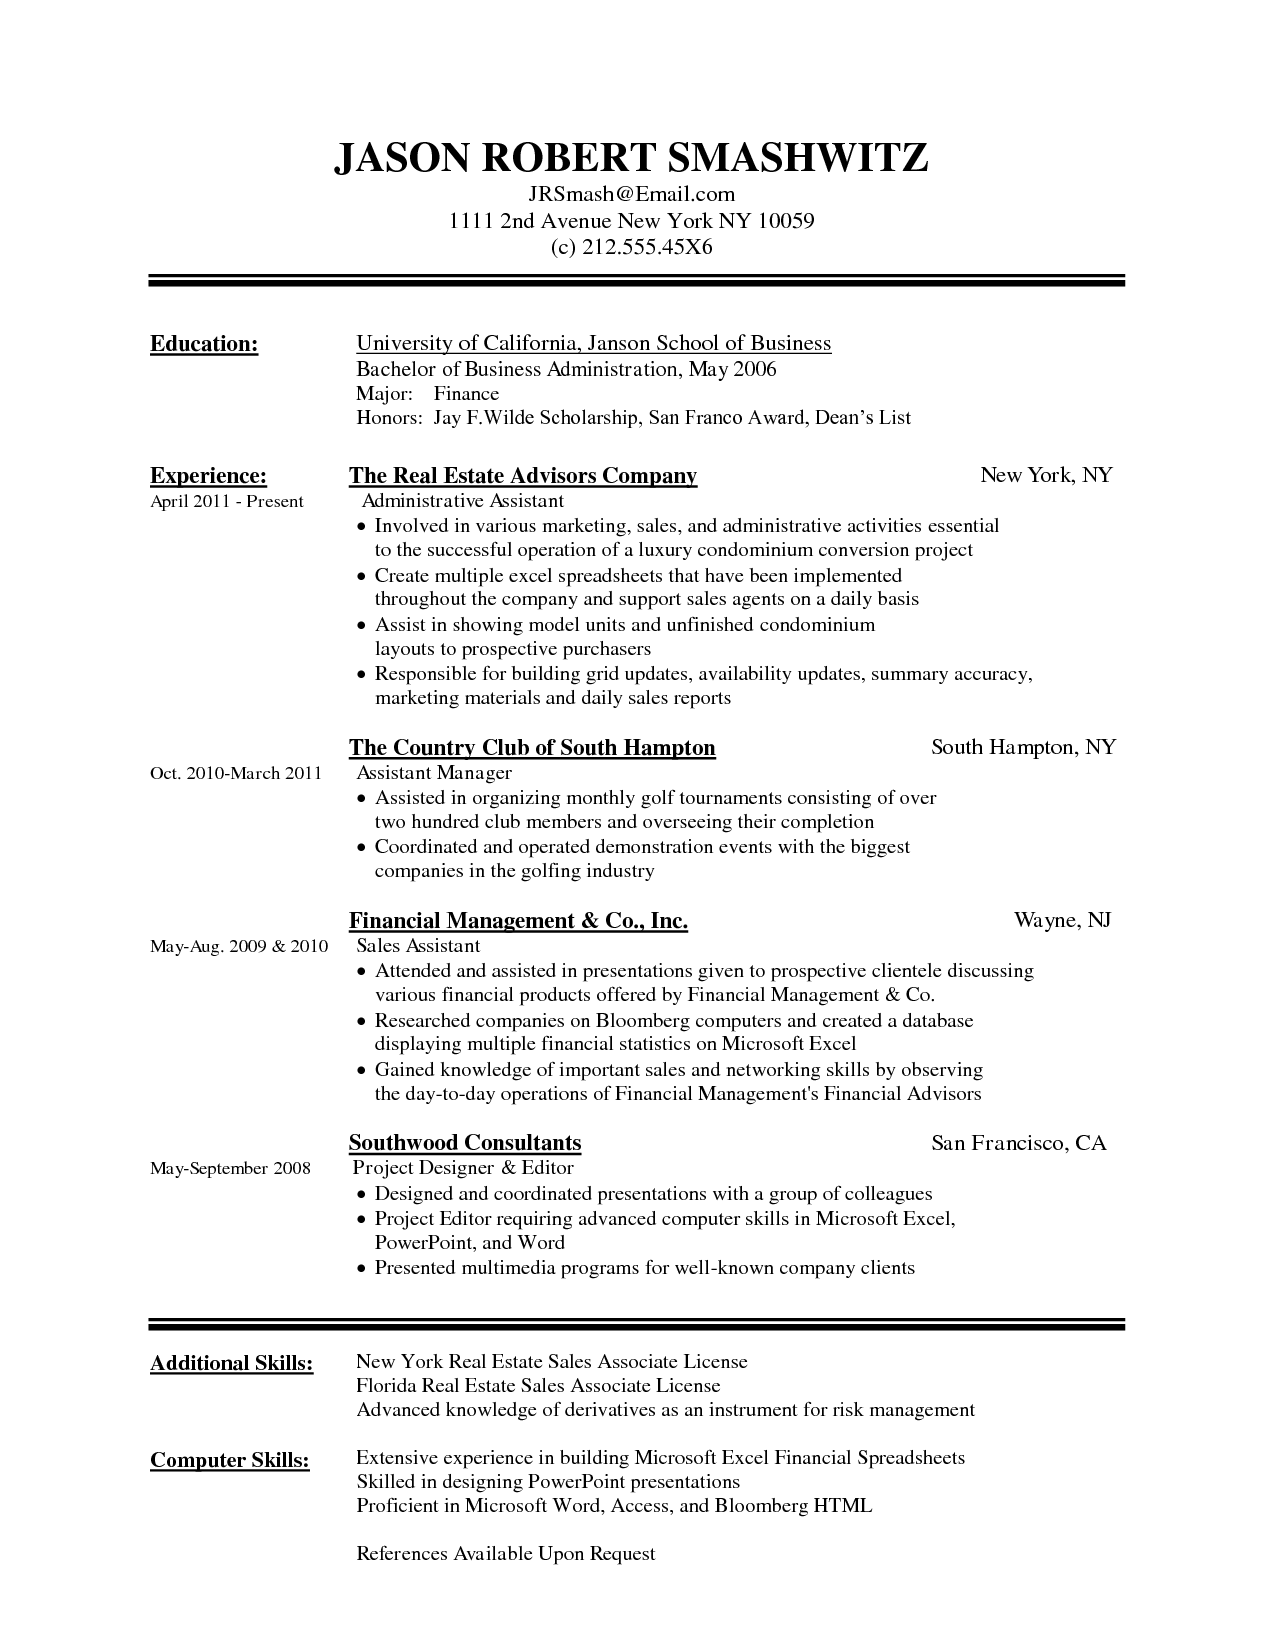 Resume Template Pinterest Microsoft Word Resume Templates Task List Templates